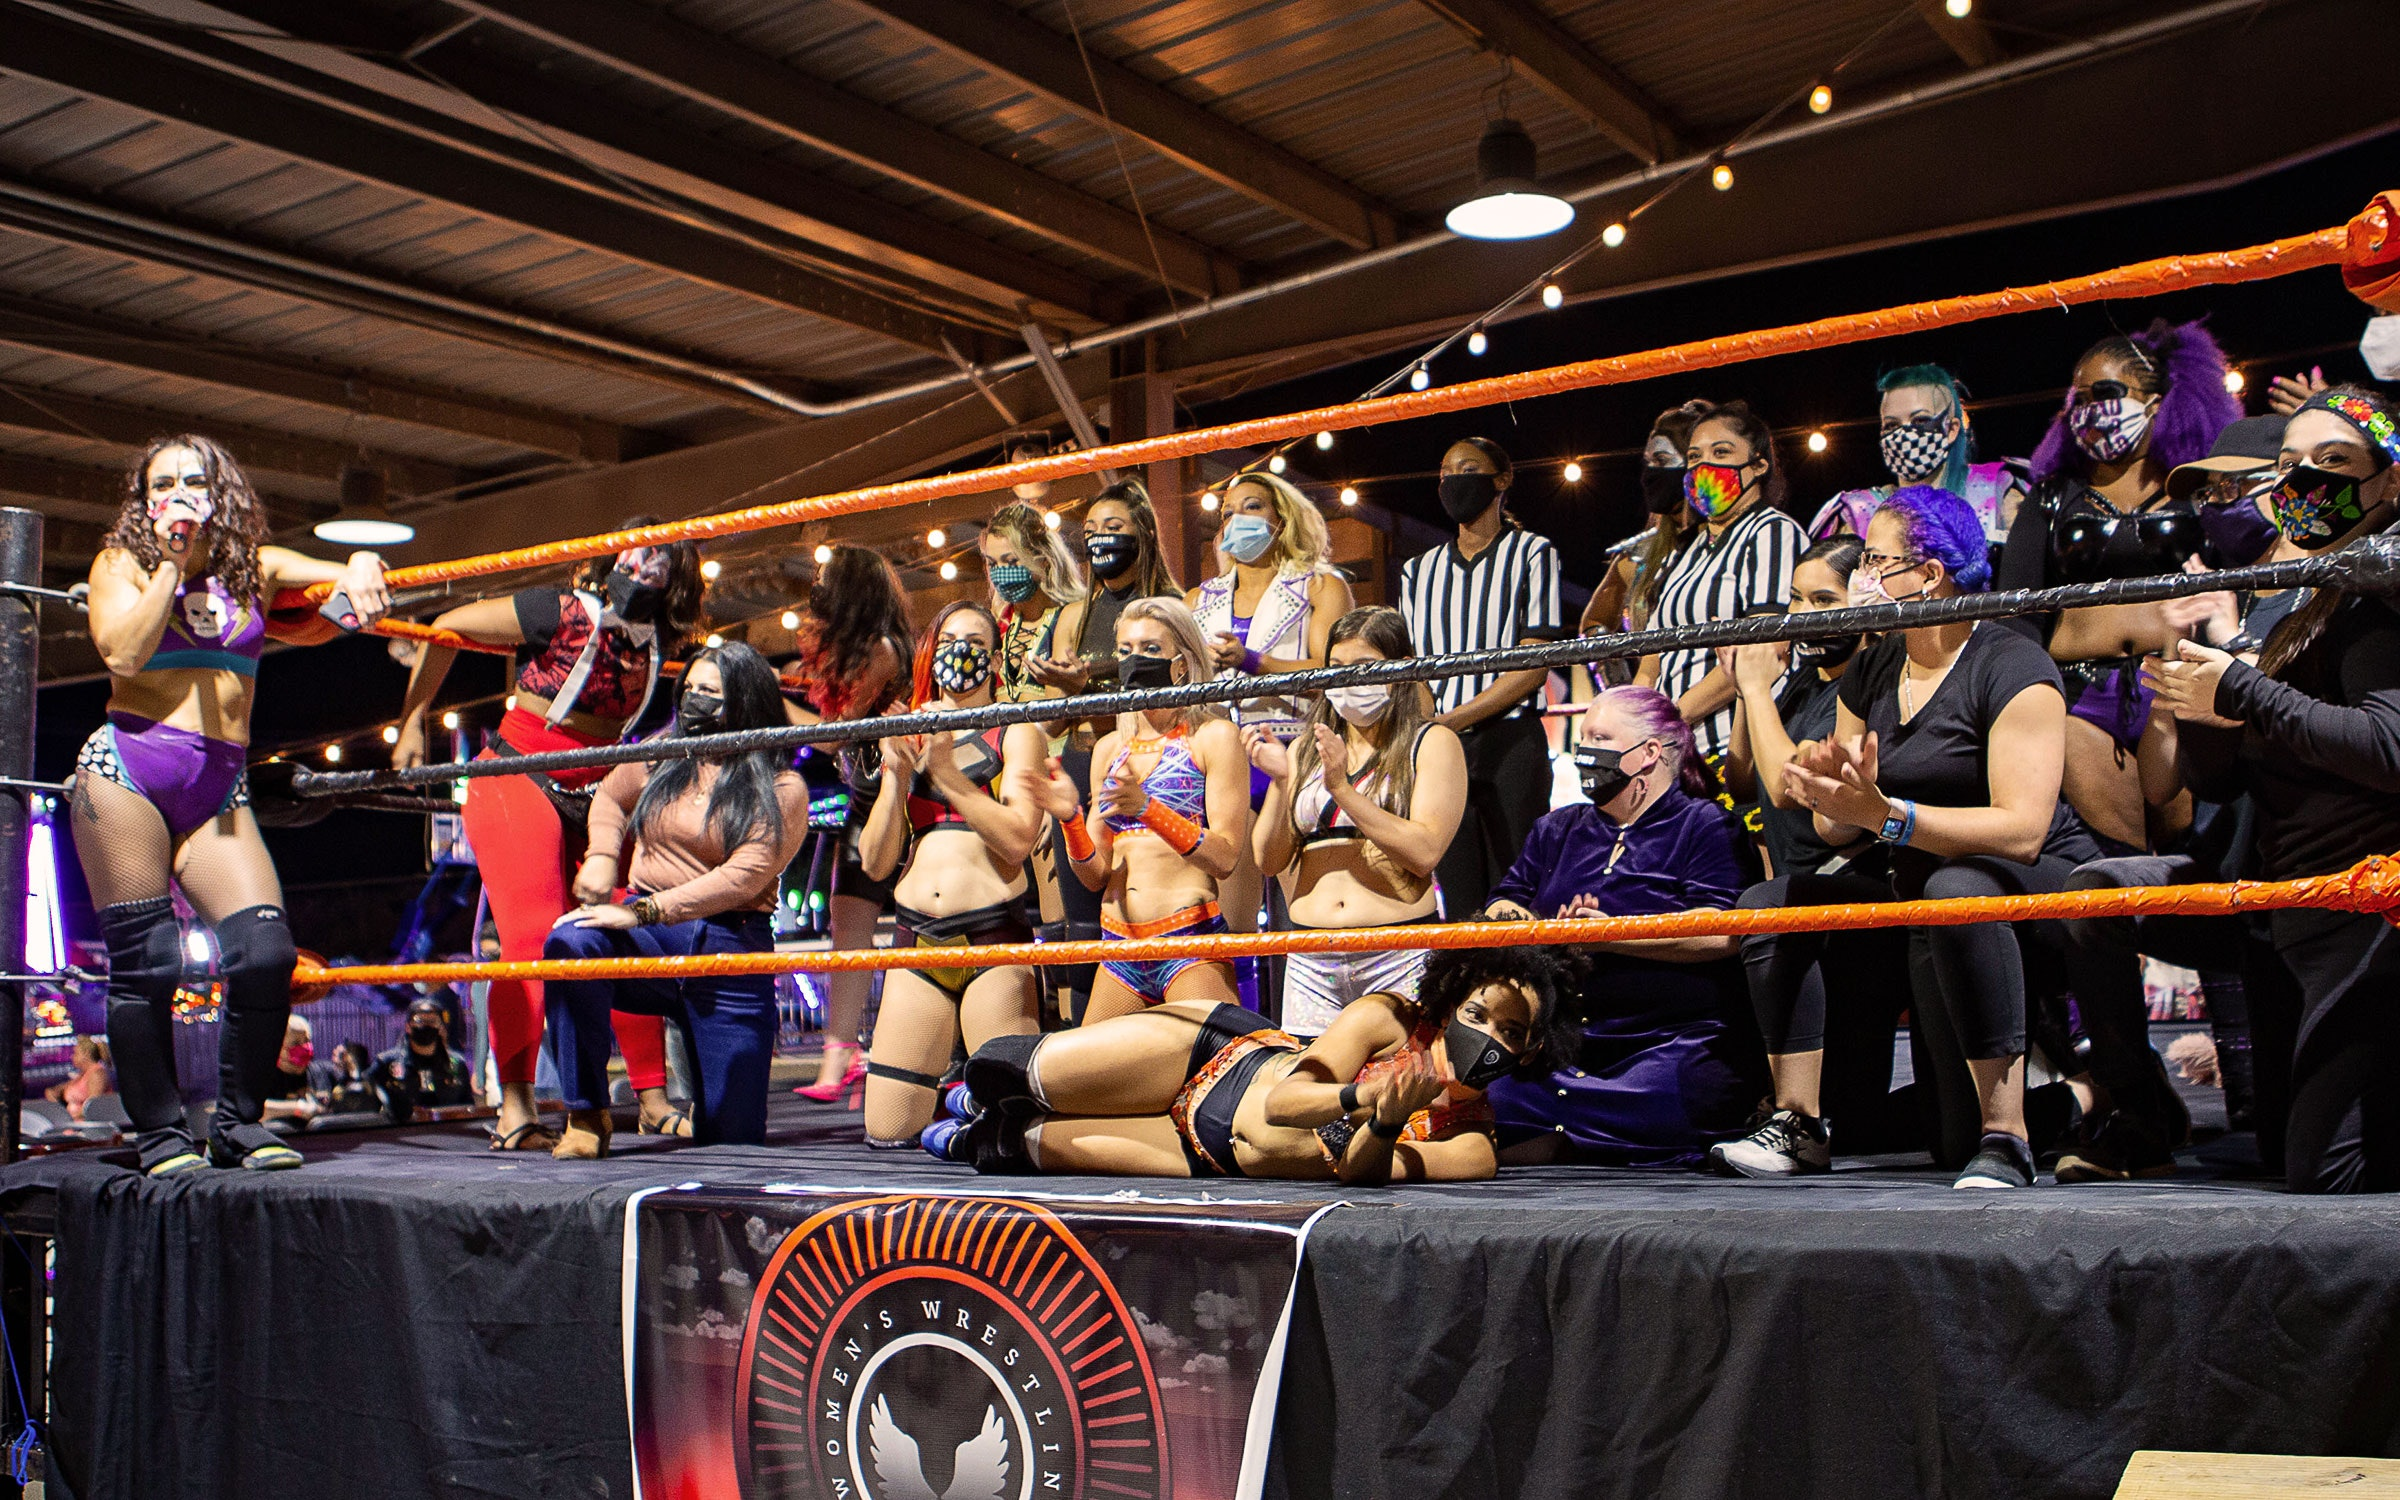 Texas S Newest Wrestling Venture Elevates Women Inside The Ring And Behind The Scenes Texas Monthly